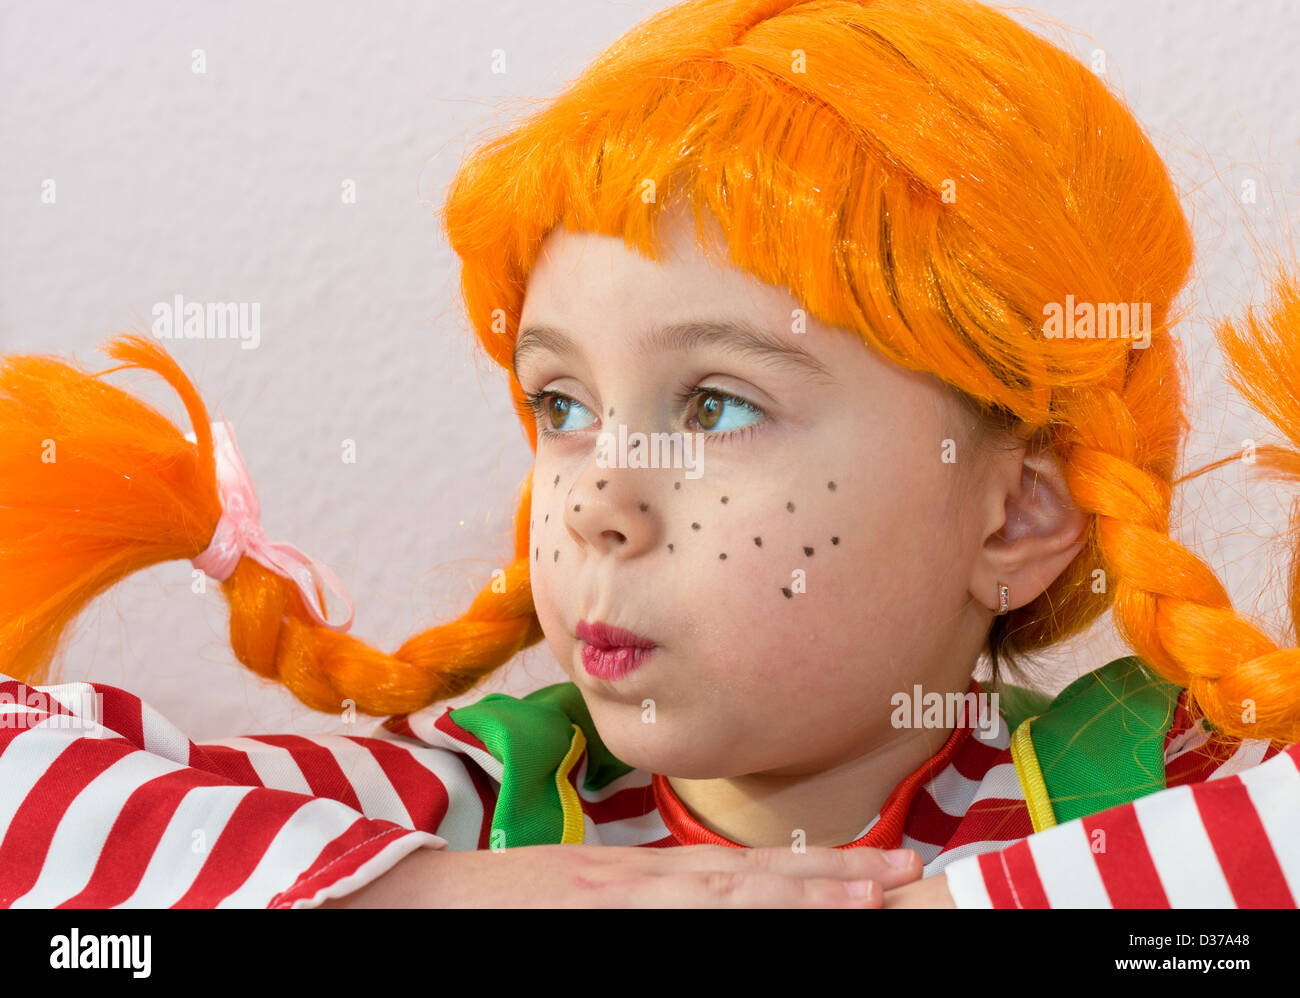 plaits, hair, pippi, child, bizarre, humor, displeased, fun, childhood, people, yellow, red - Stock Image